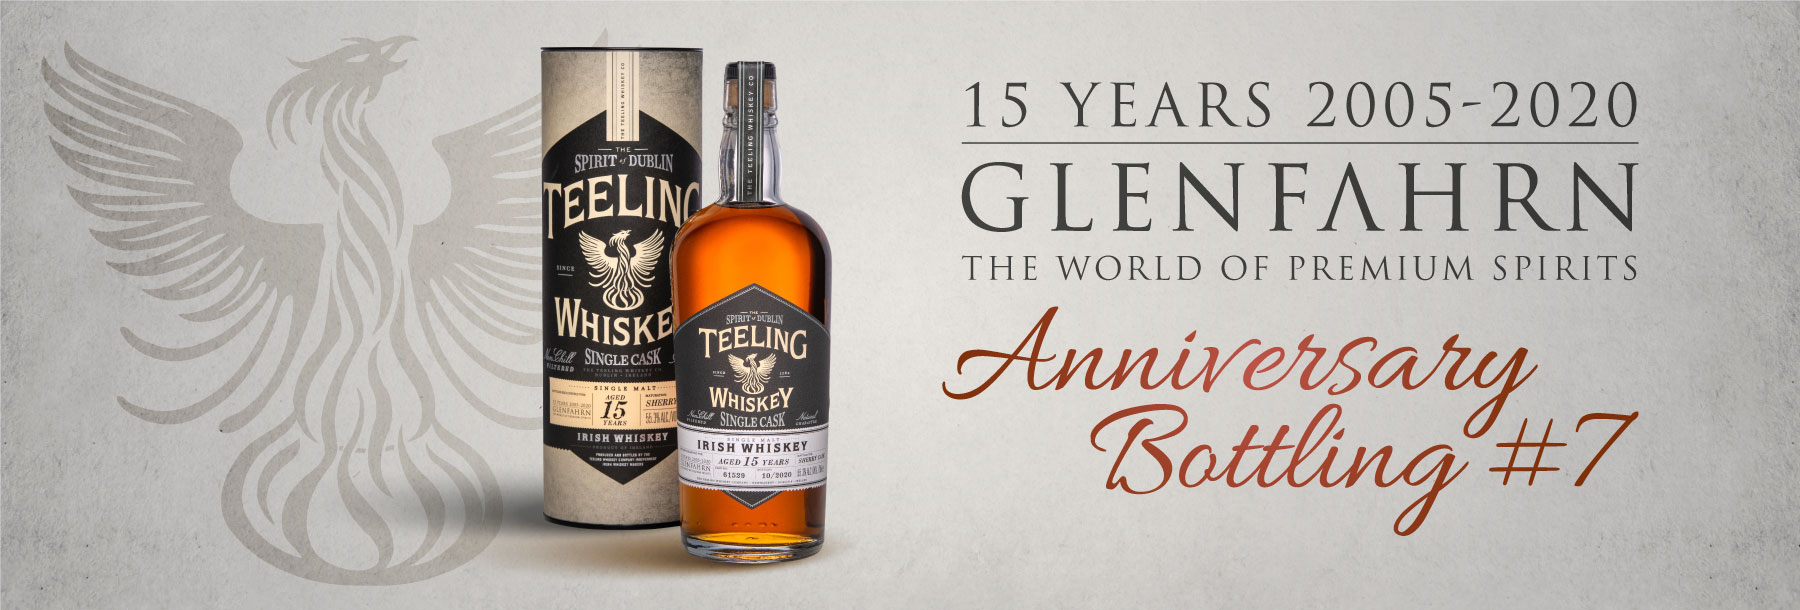 Teeling 15y Cask#61529 Glen Fahrn 15th Anniversary Bottling #7 Single Malt Irish Whiskey